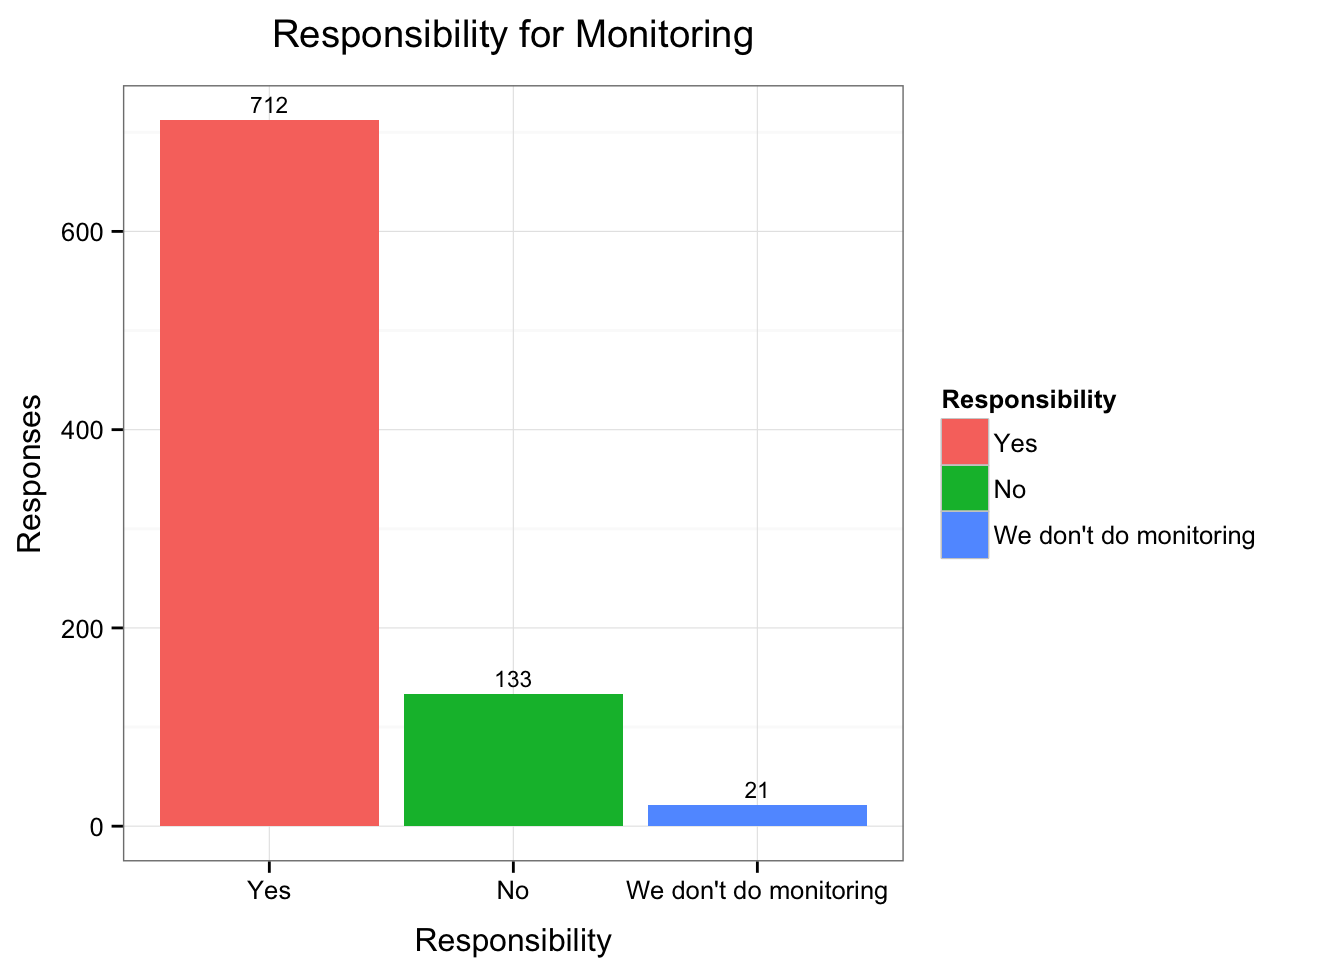 Responsibility for Monitoring